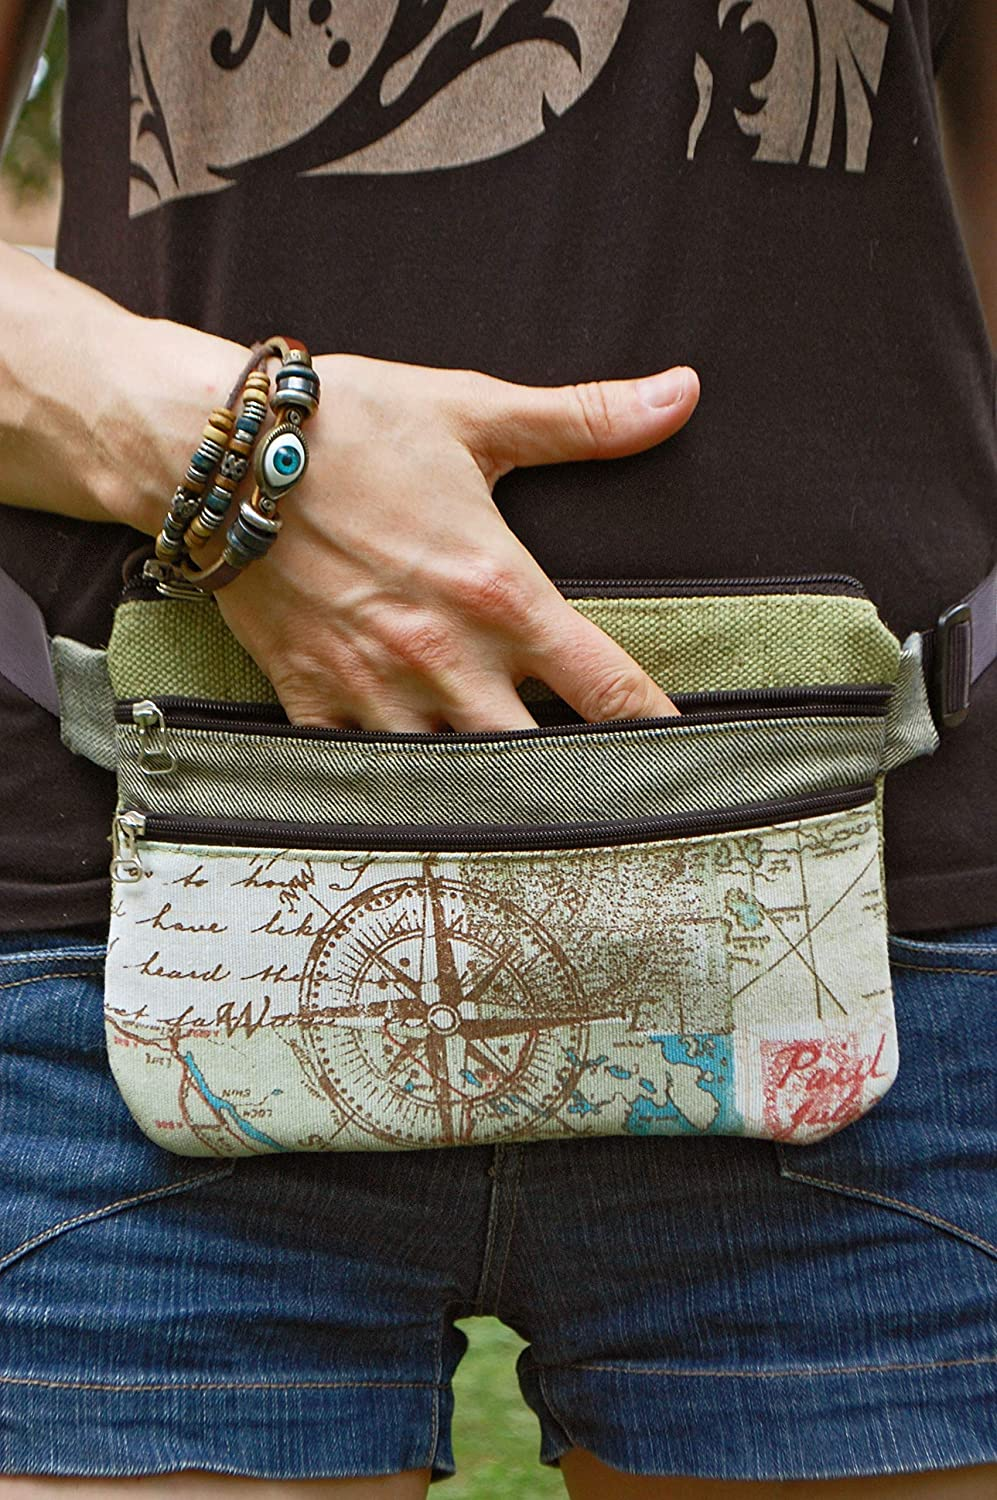 39a1fb2b0bfc Amazon.com: Unisex Fanny Pack for Cell Phone and Money, Travel Hip ...